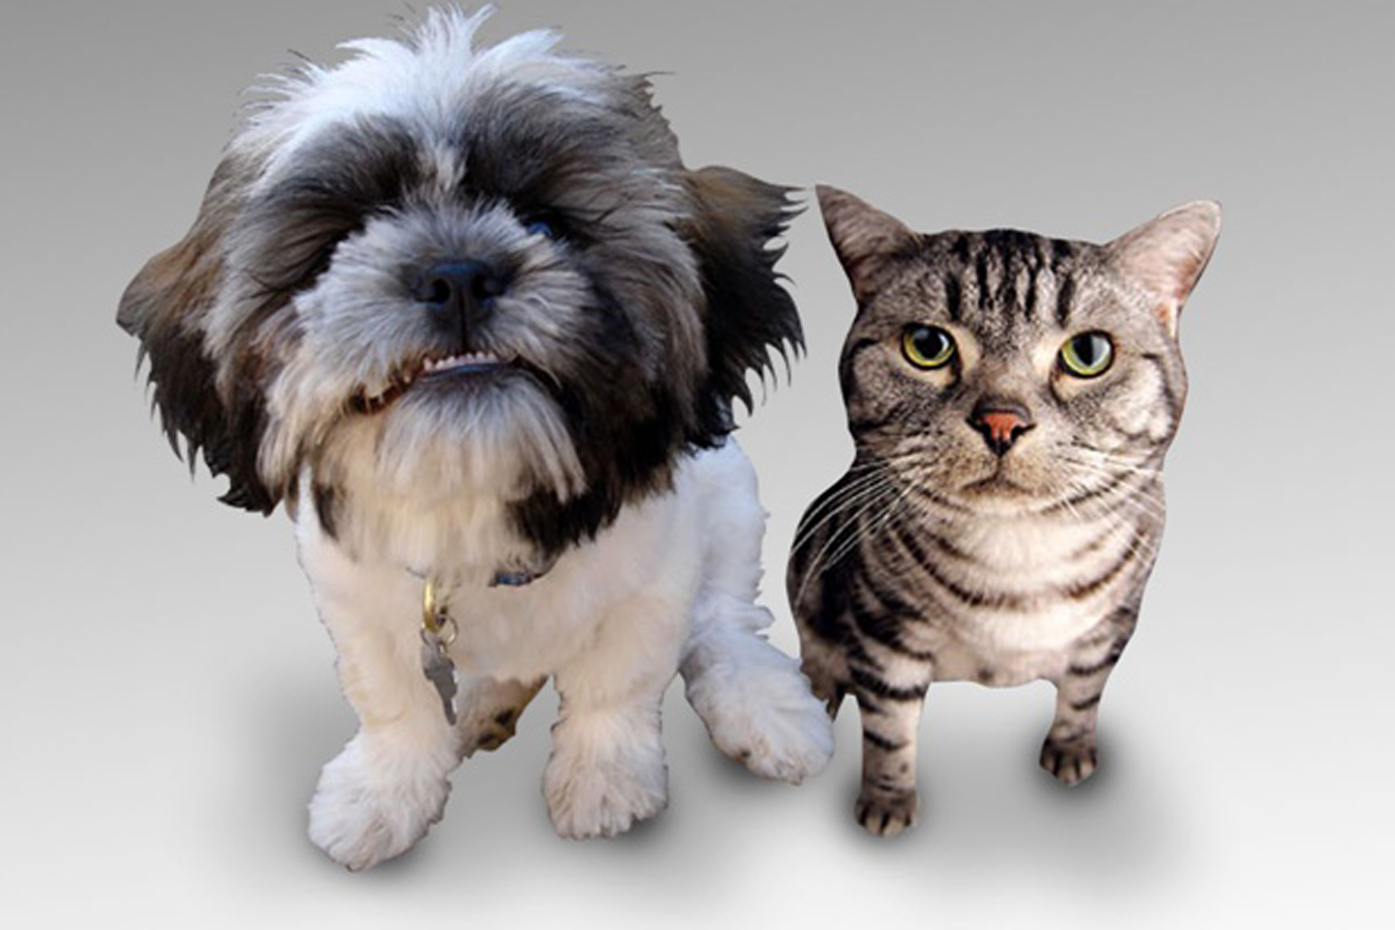 Dog and Cat_1439994237751.jpg